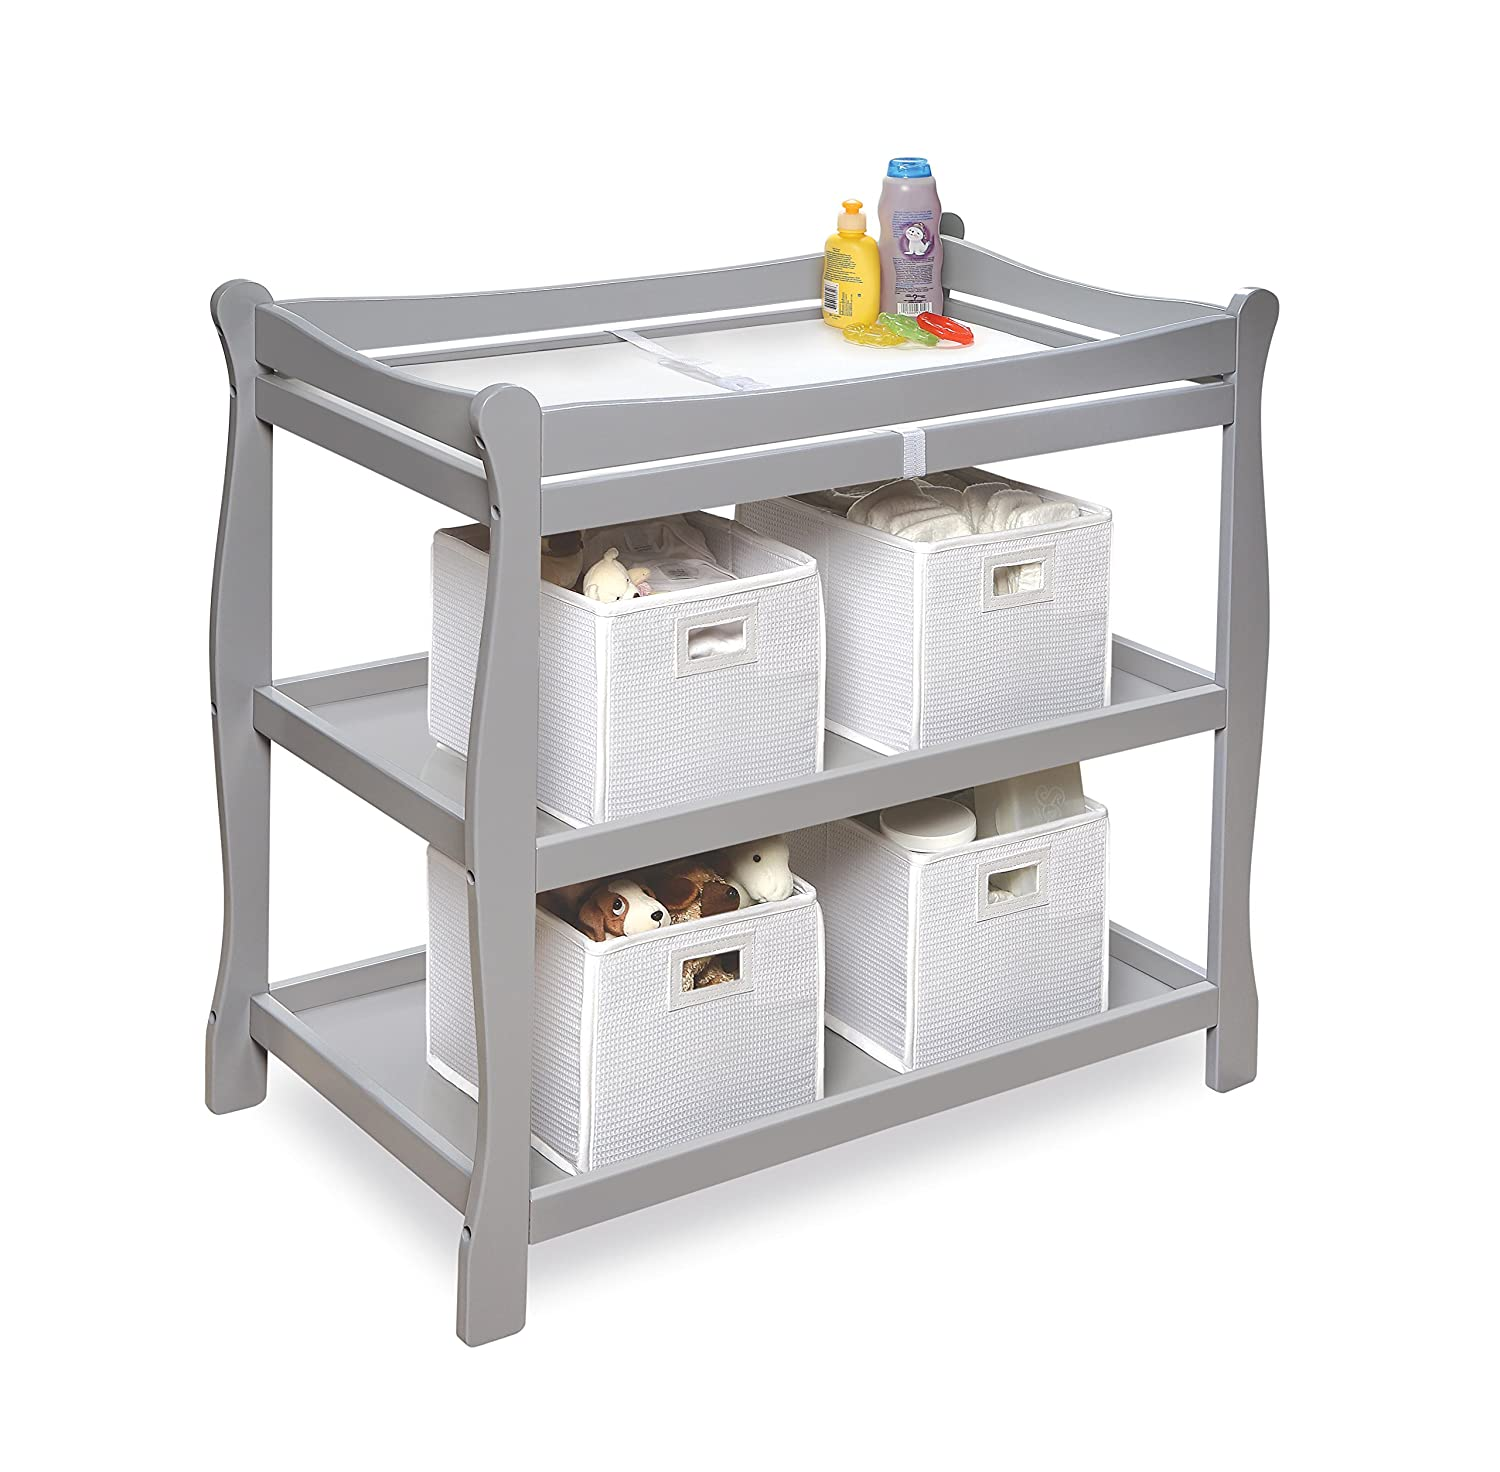 Amazon.com : Badger Basket Sleigh Style Baby Changing Table, Grey : Baby